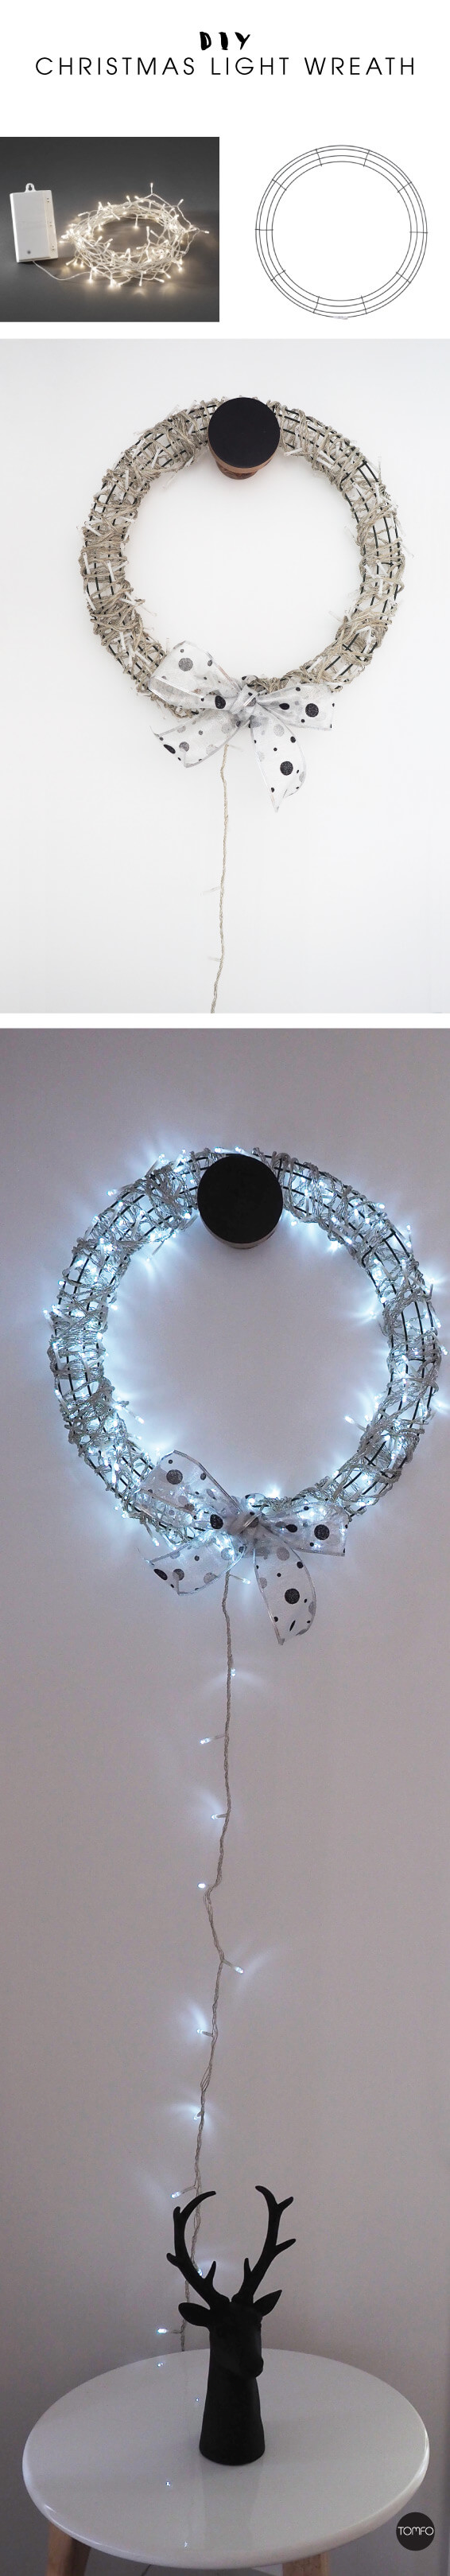 DIY-Christmas-light-wreath-Tomfo